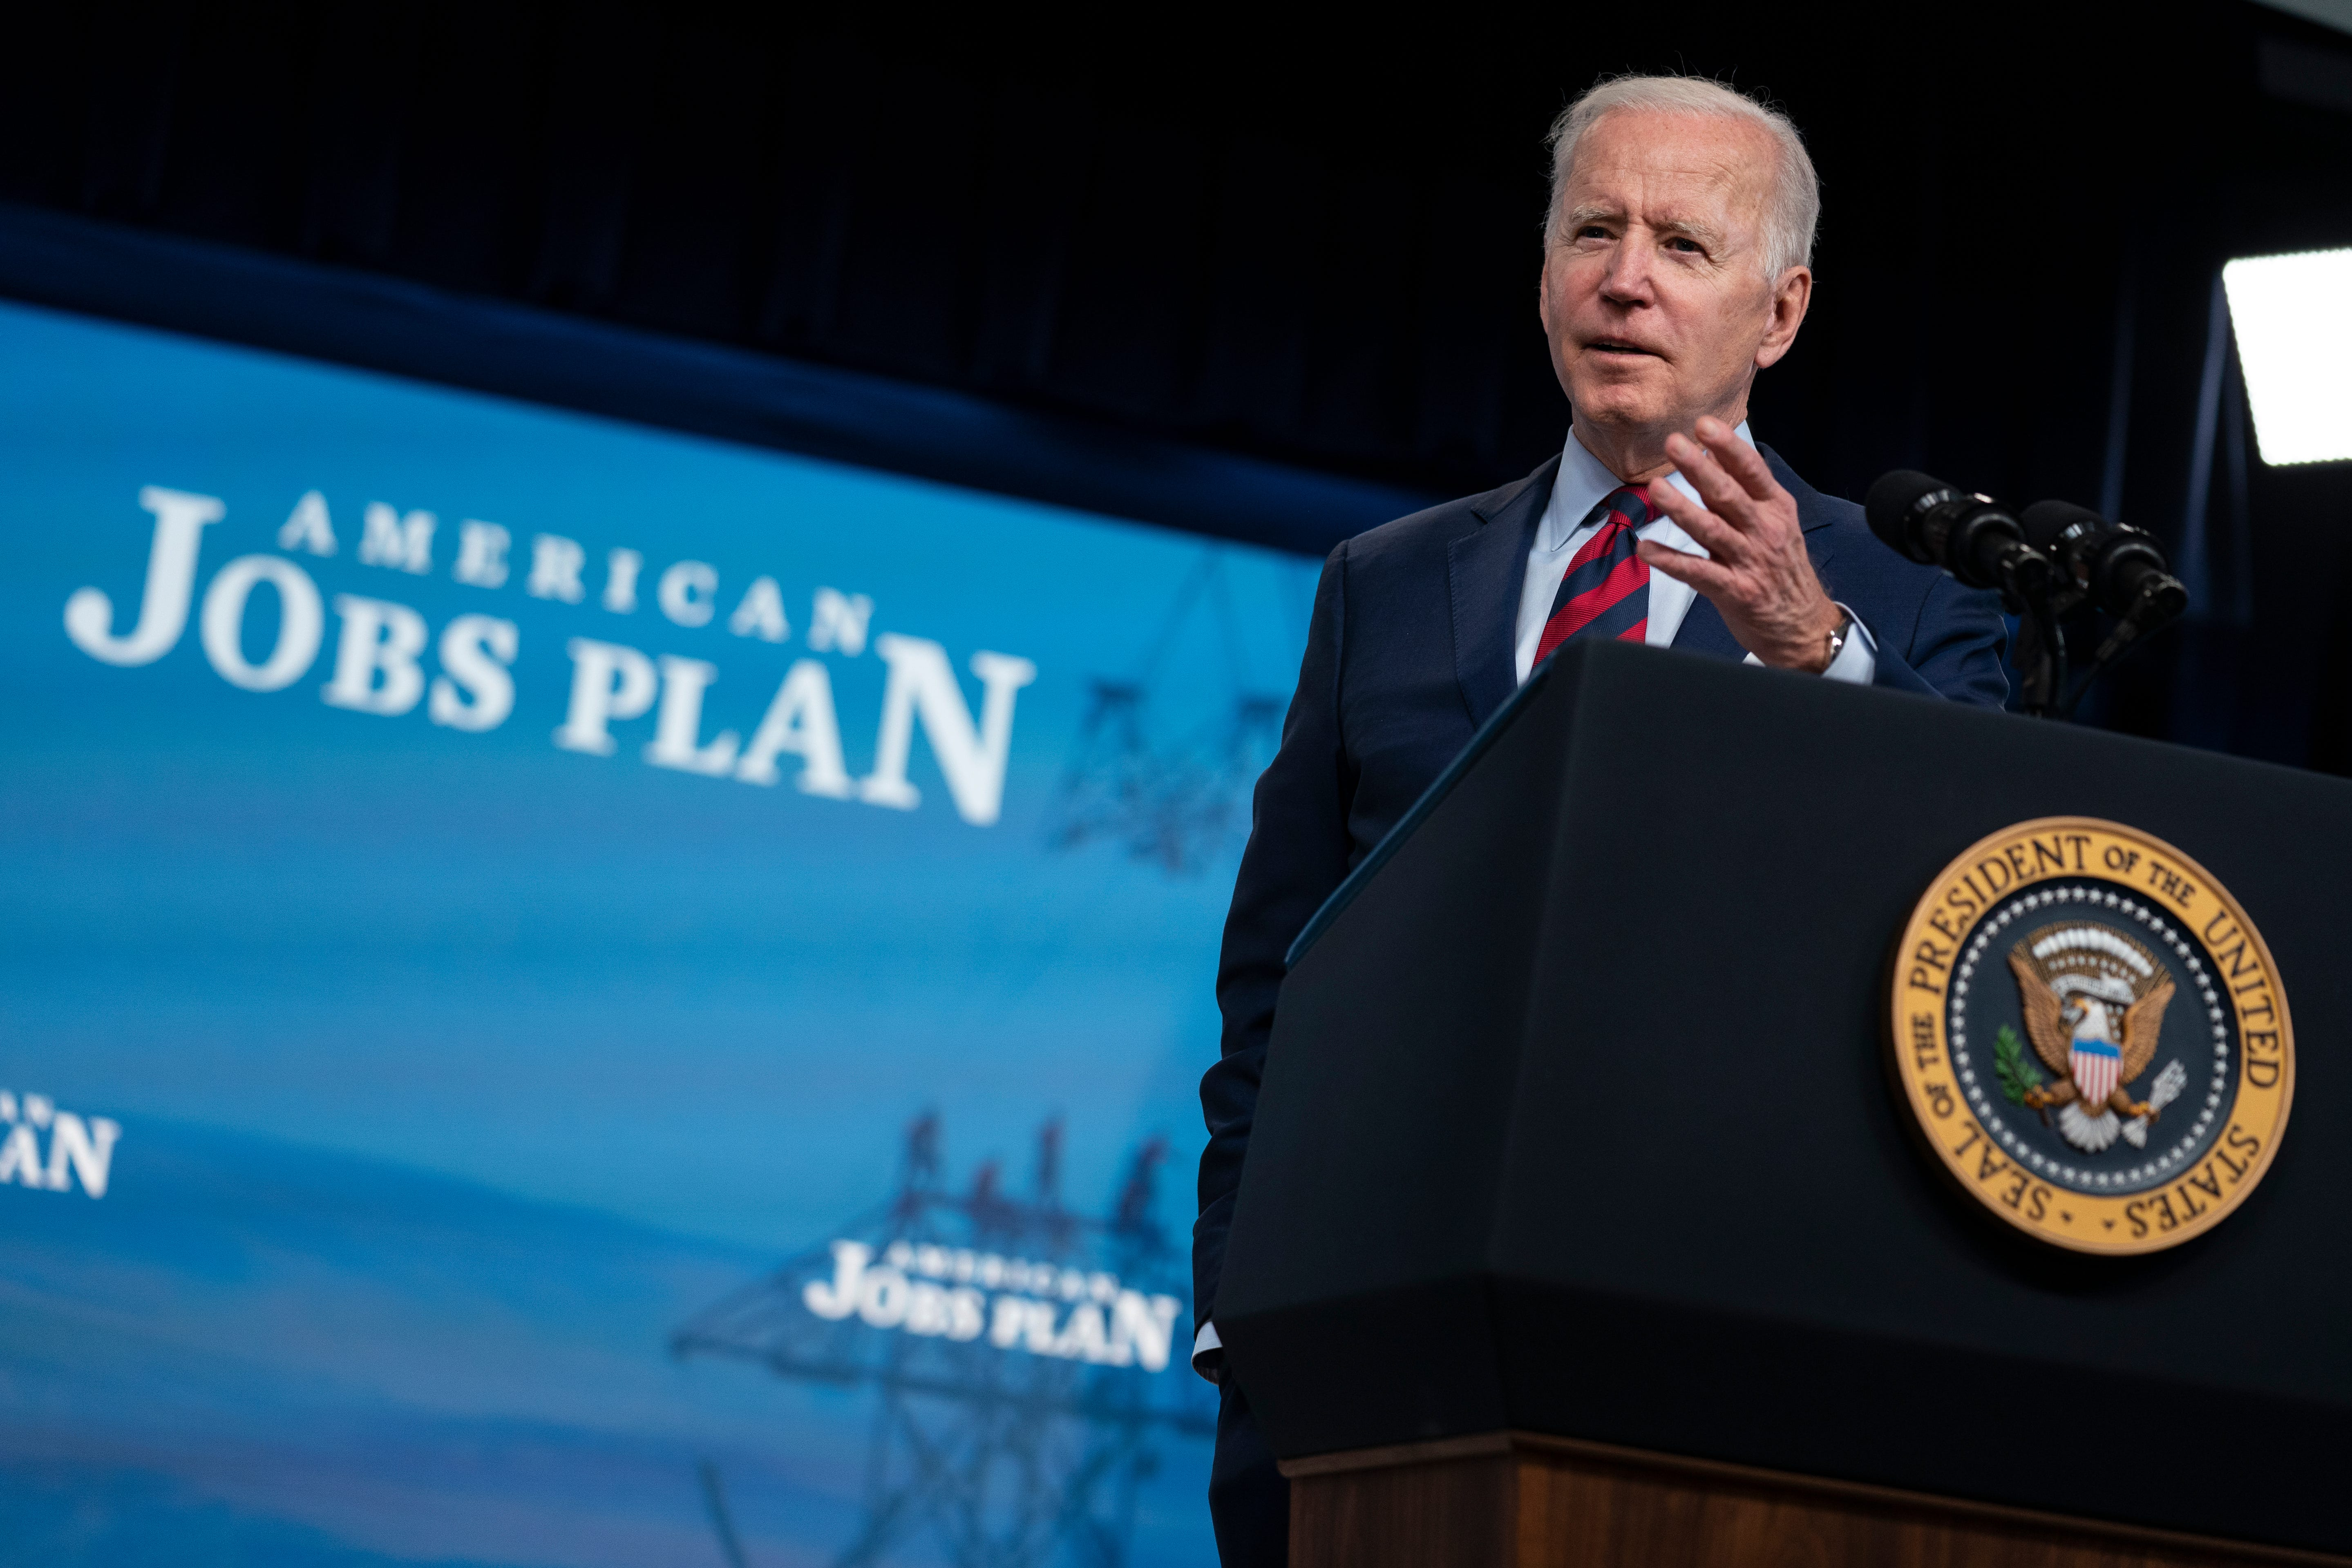 Biden open to compromise on infrastructure, but not inaction 2